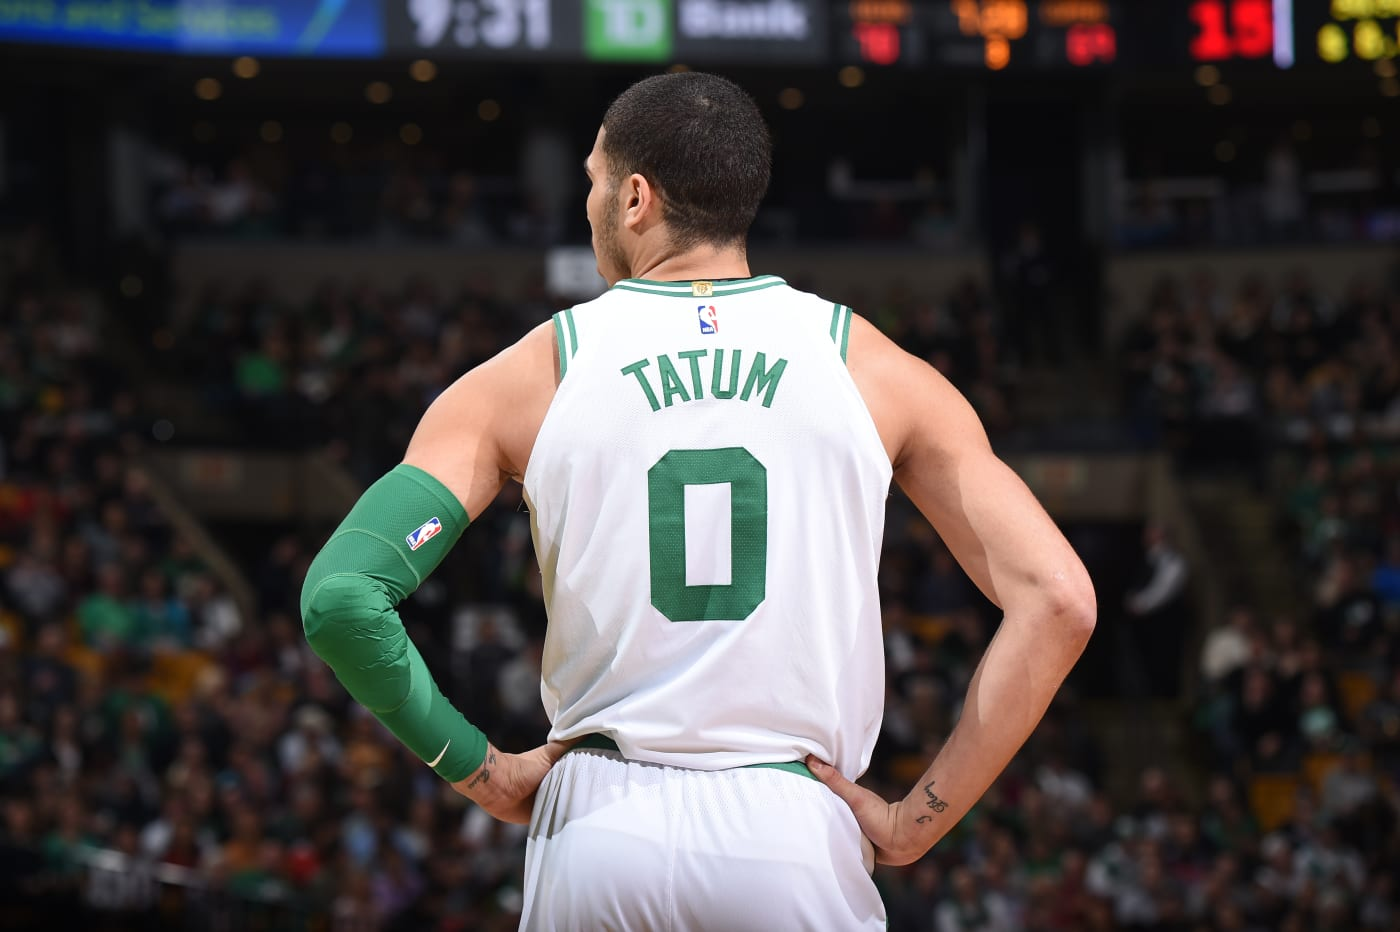 This is a photo of Jayson Tatum